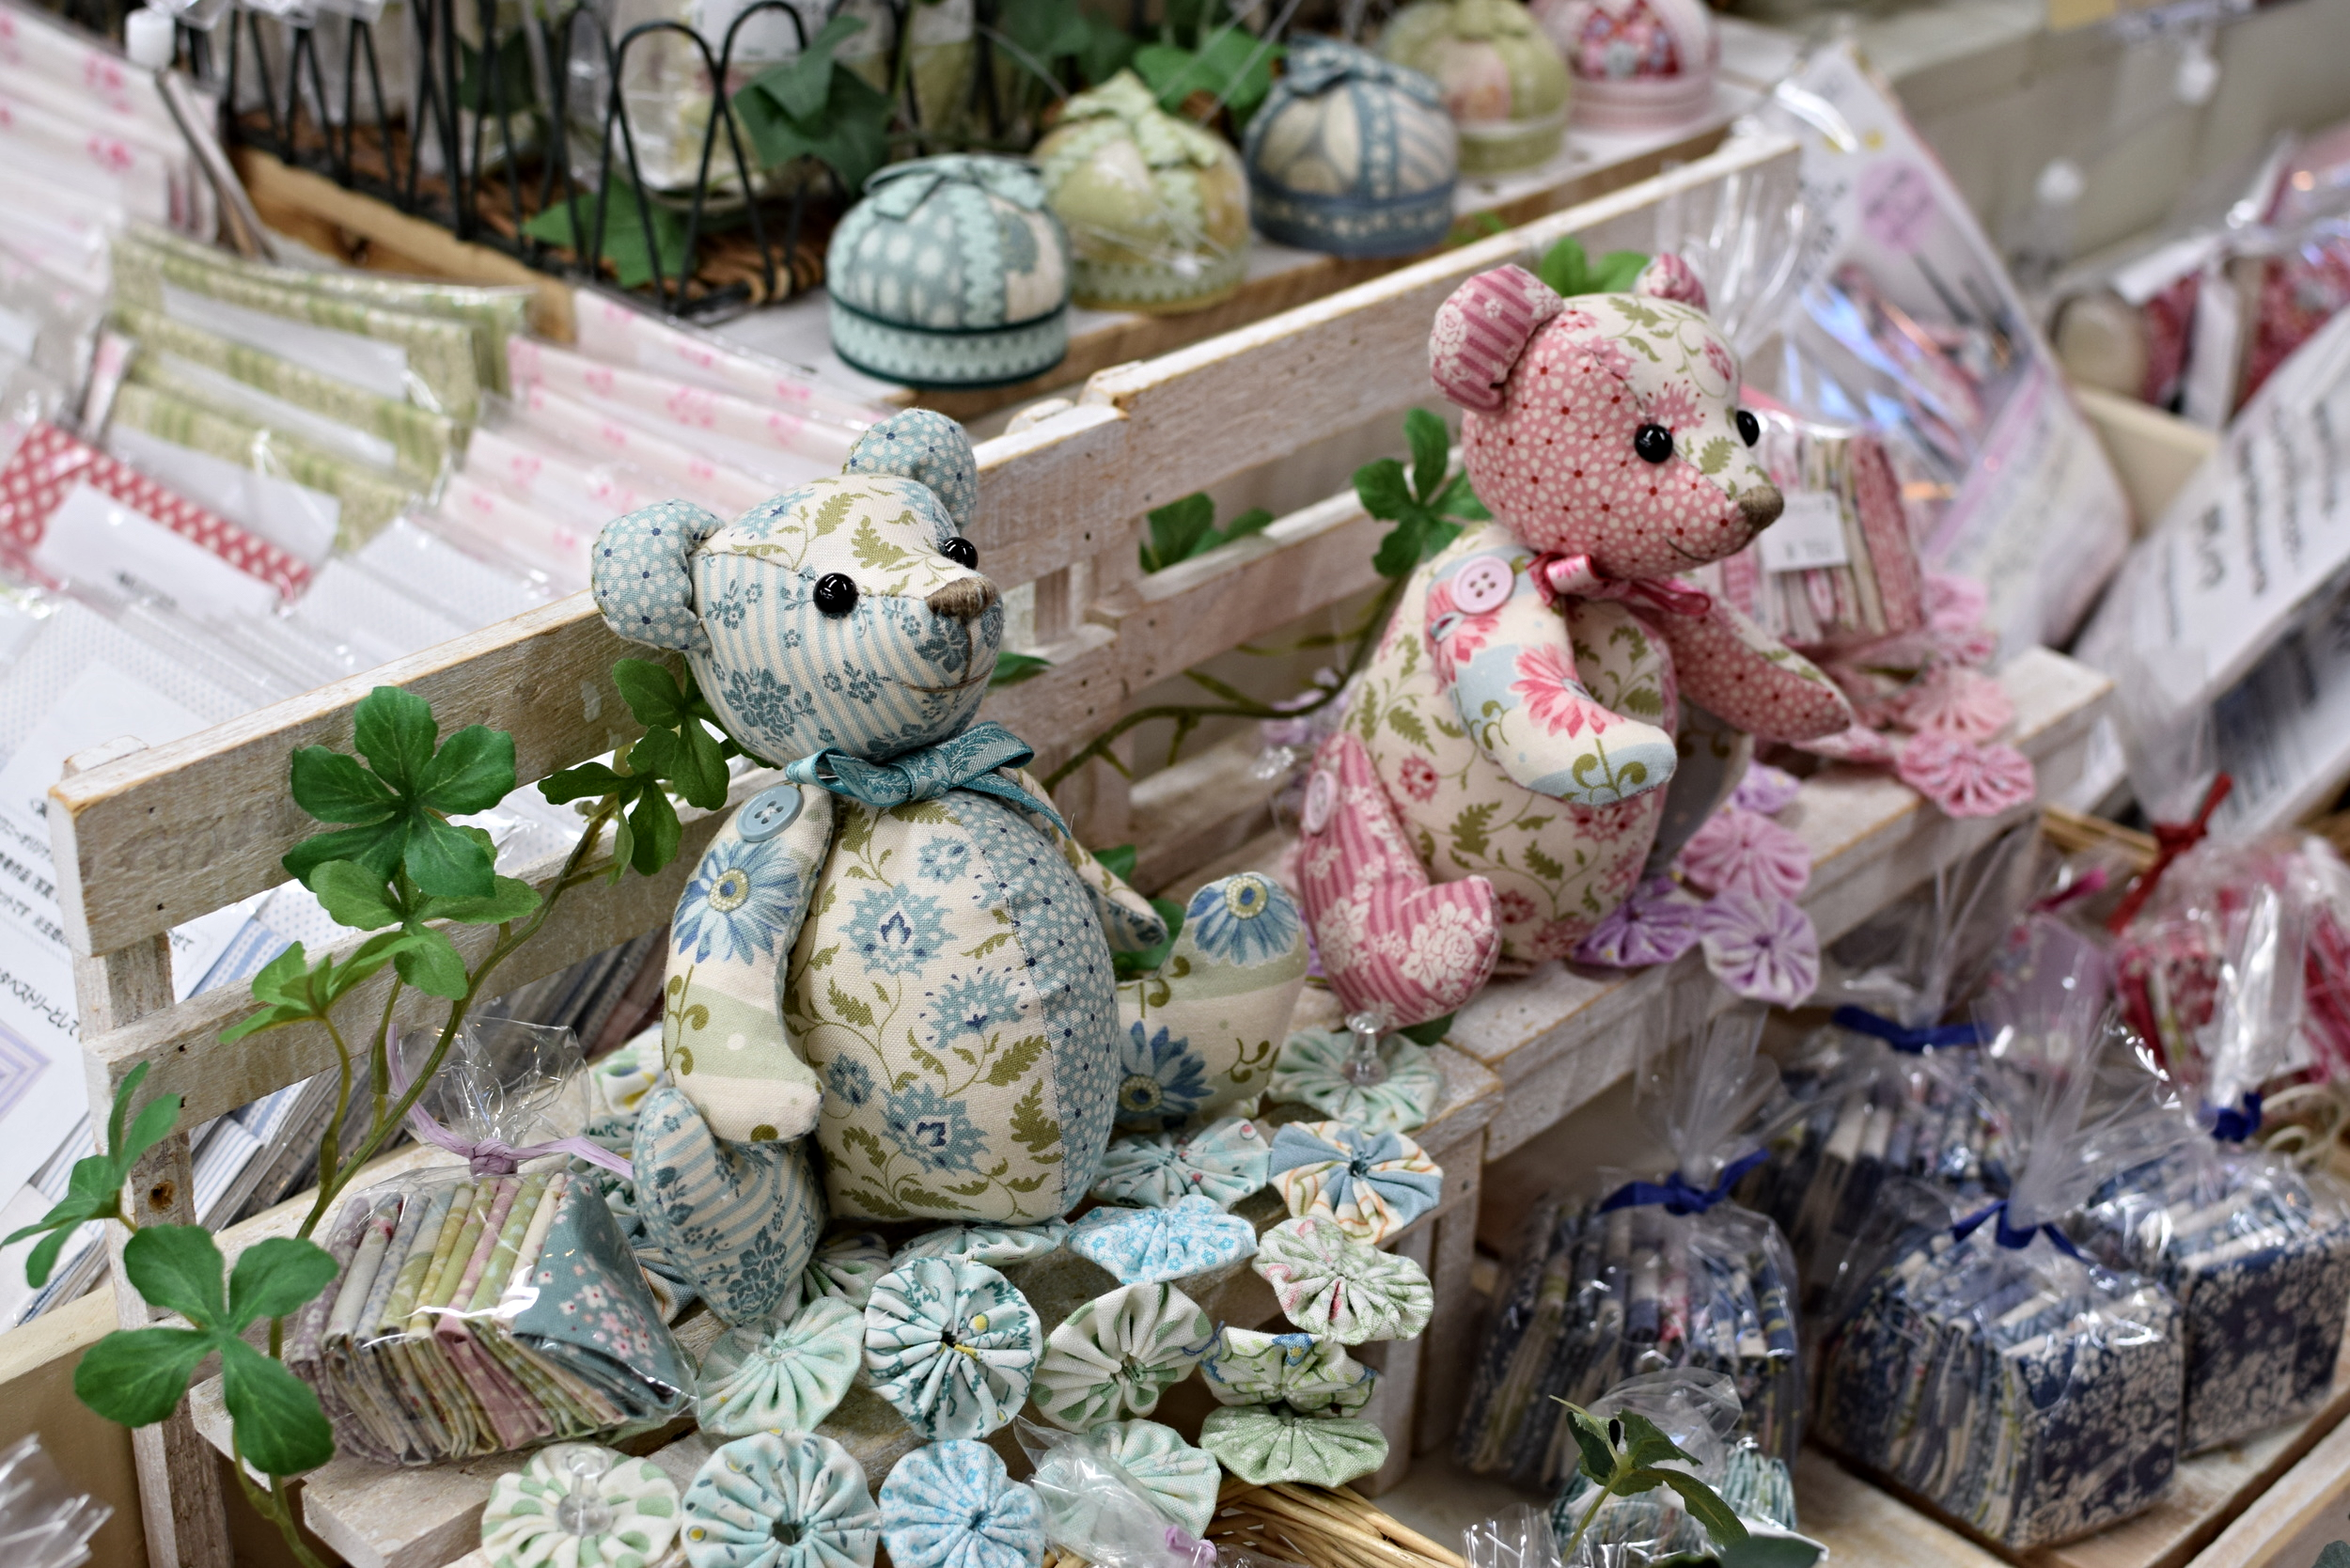 Teddy bears in Tilda fabrics.